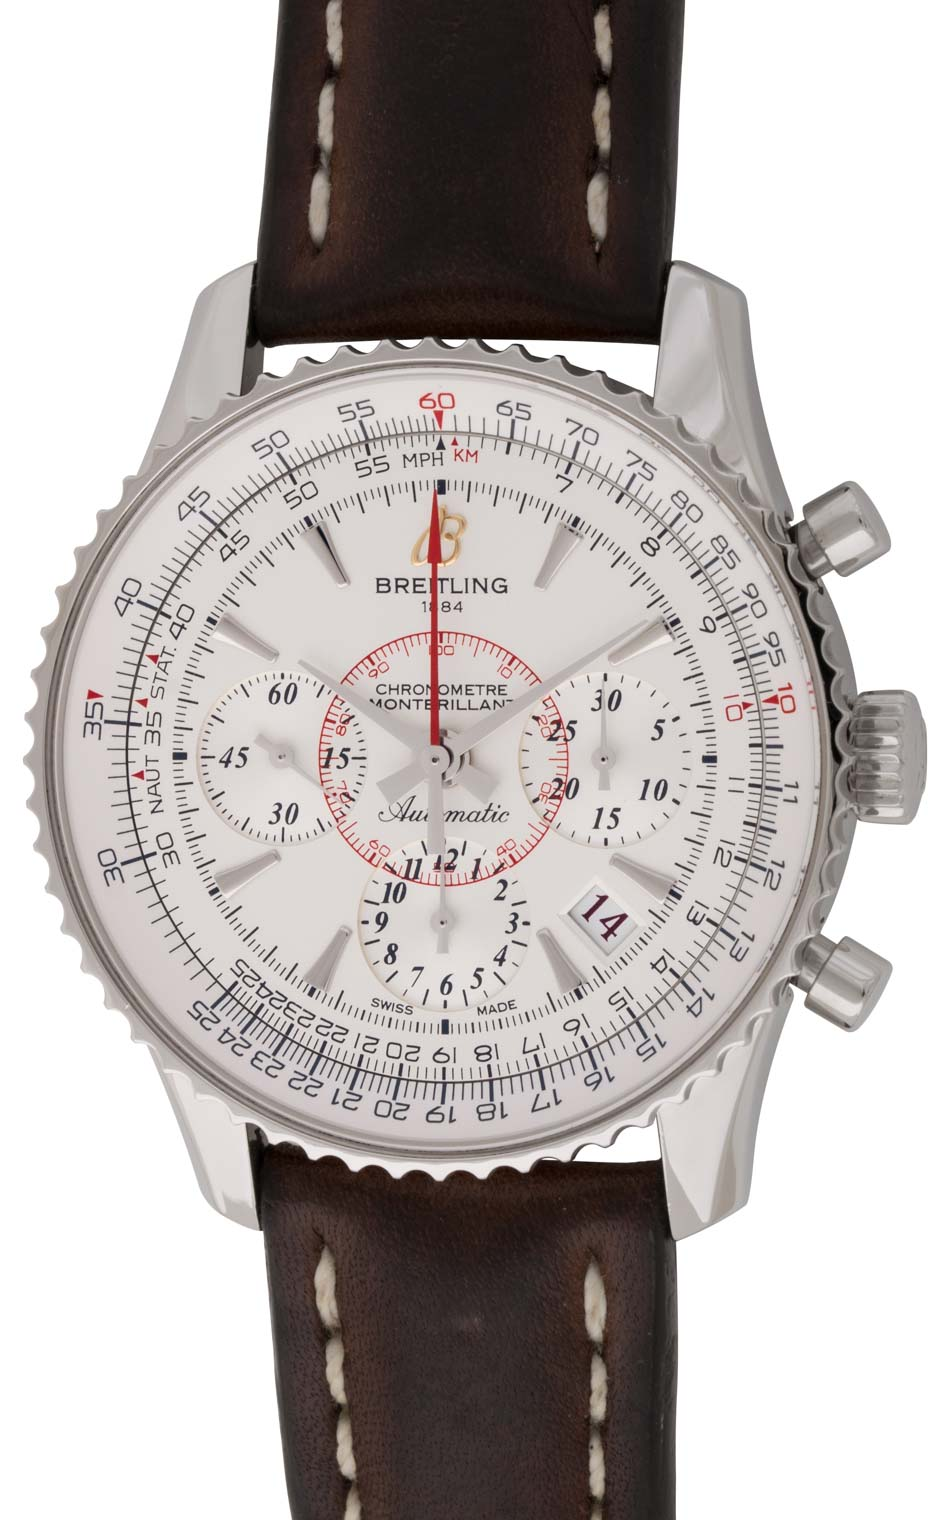 Breitling - Montbrilliant 01 Limited Edition